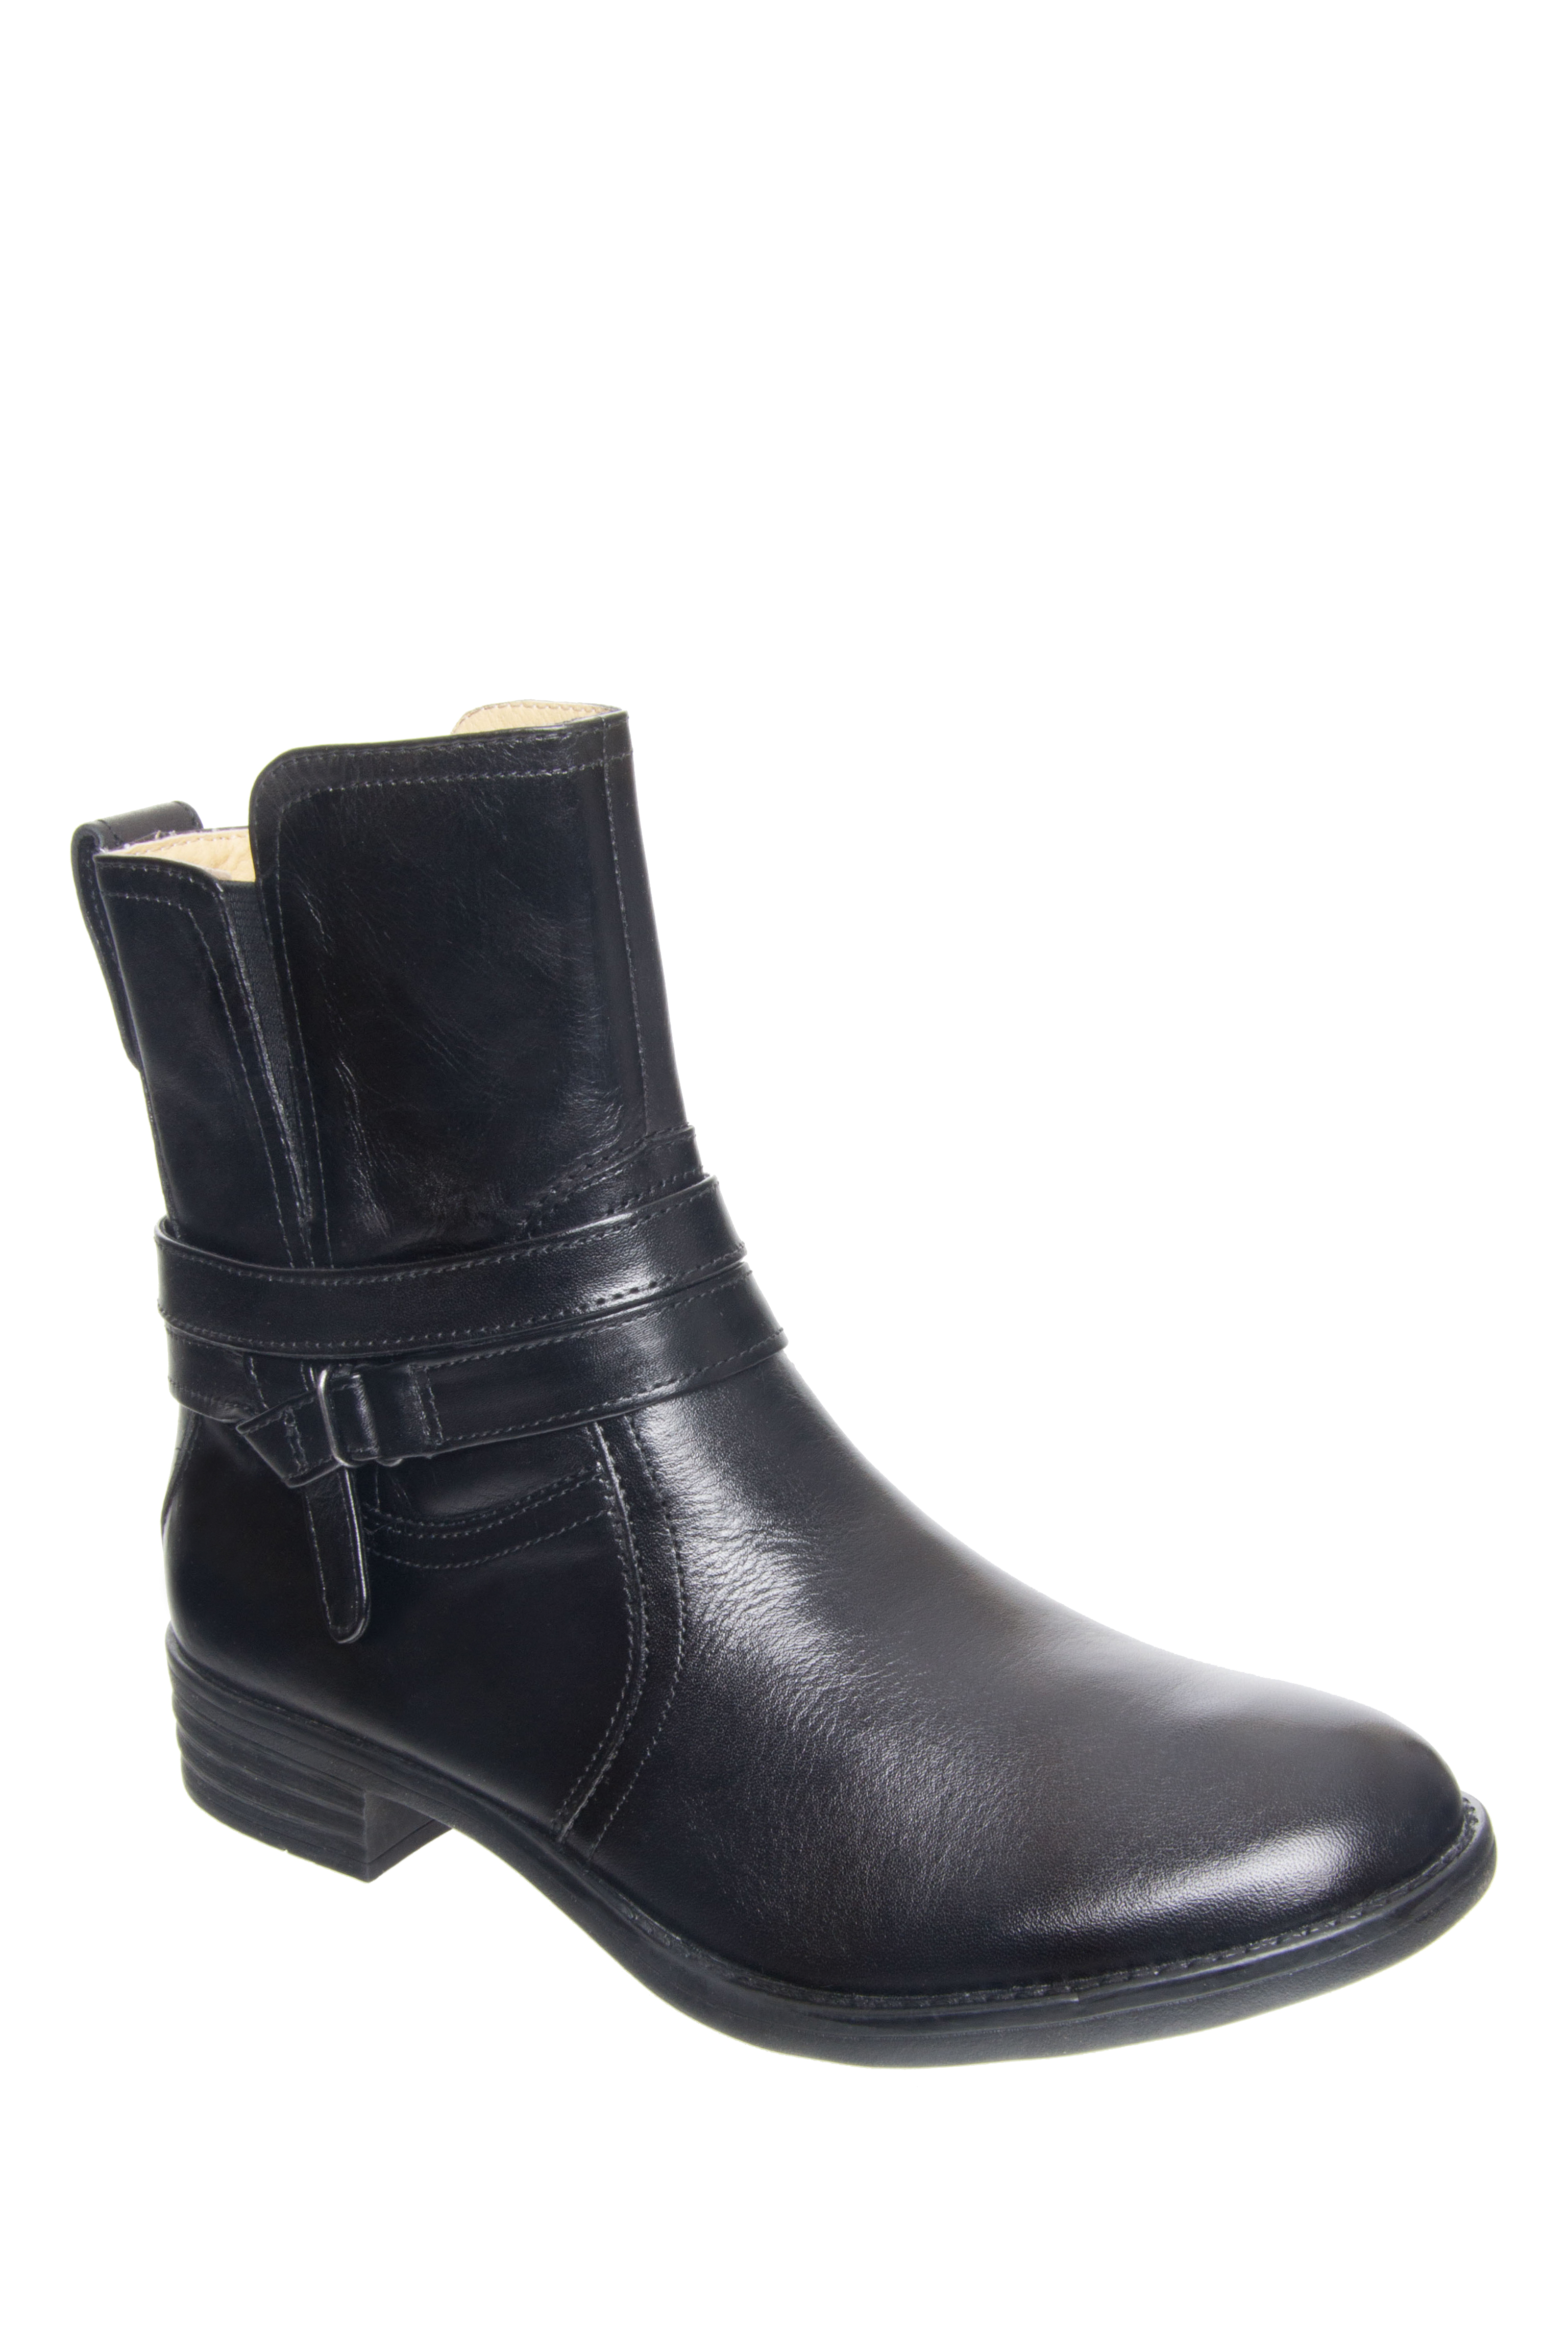 Bussola Tania Low Heel Boots - Black